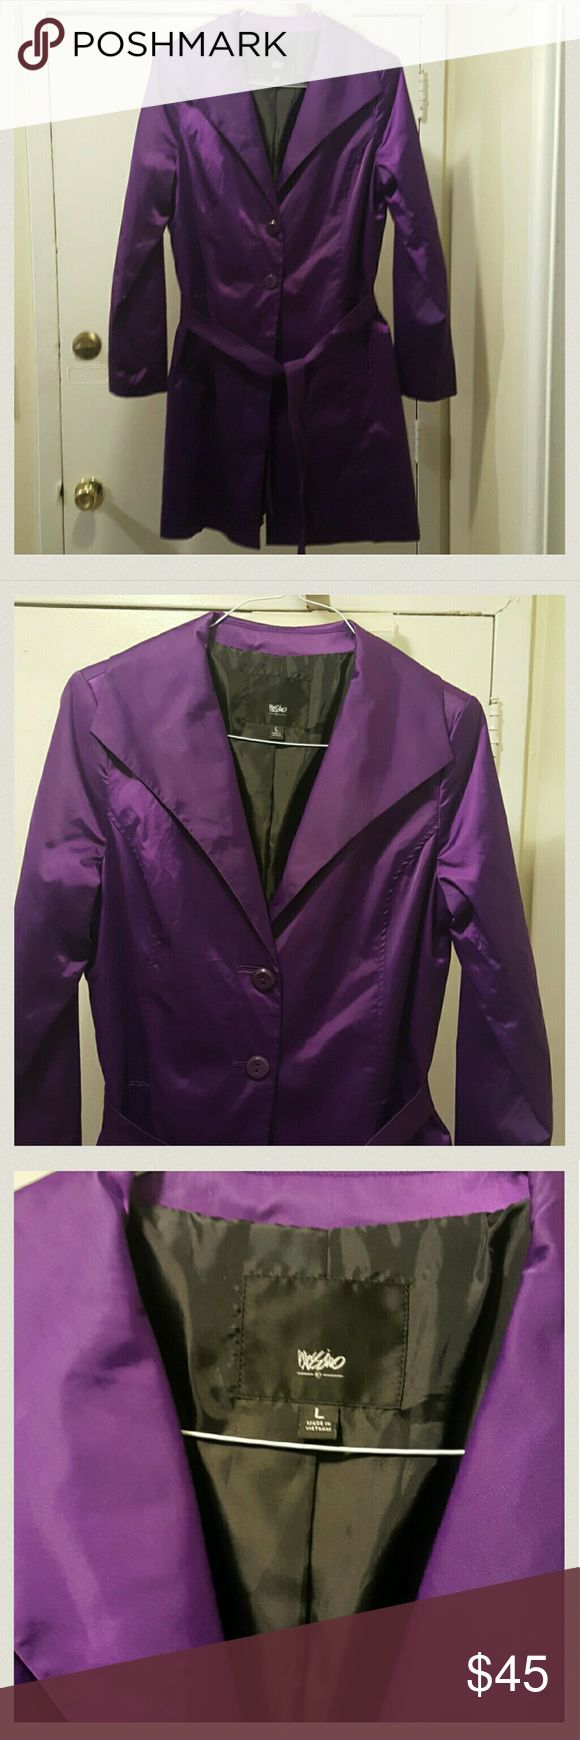 Beautiful Mossimo trench coat NWOT Purple, cotton nylon, looks silk, lined, size lg, NEW Mossimo Supply Co. Jackets & Coats Trench Coats